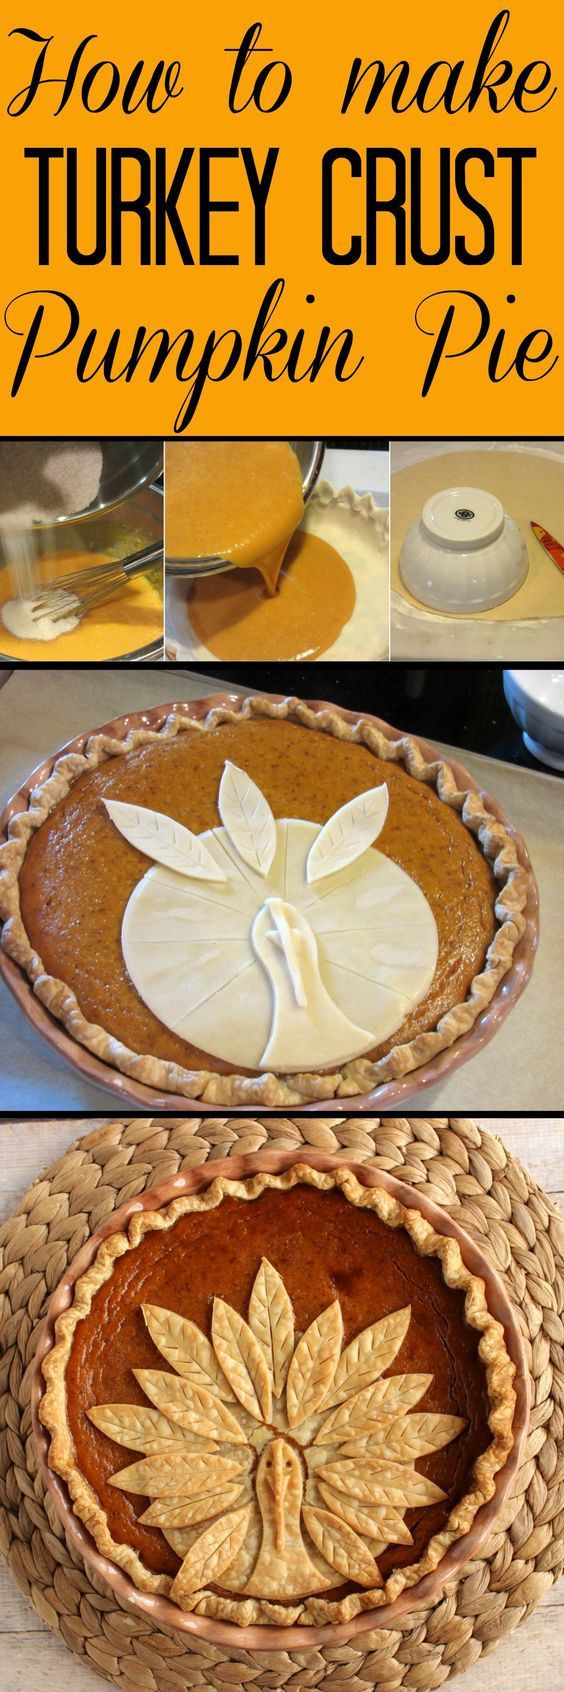 Holiday Desserts Thanksgiving  Best 20 Thanksgiving treats ideas on Pinterest